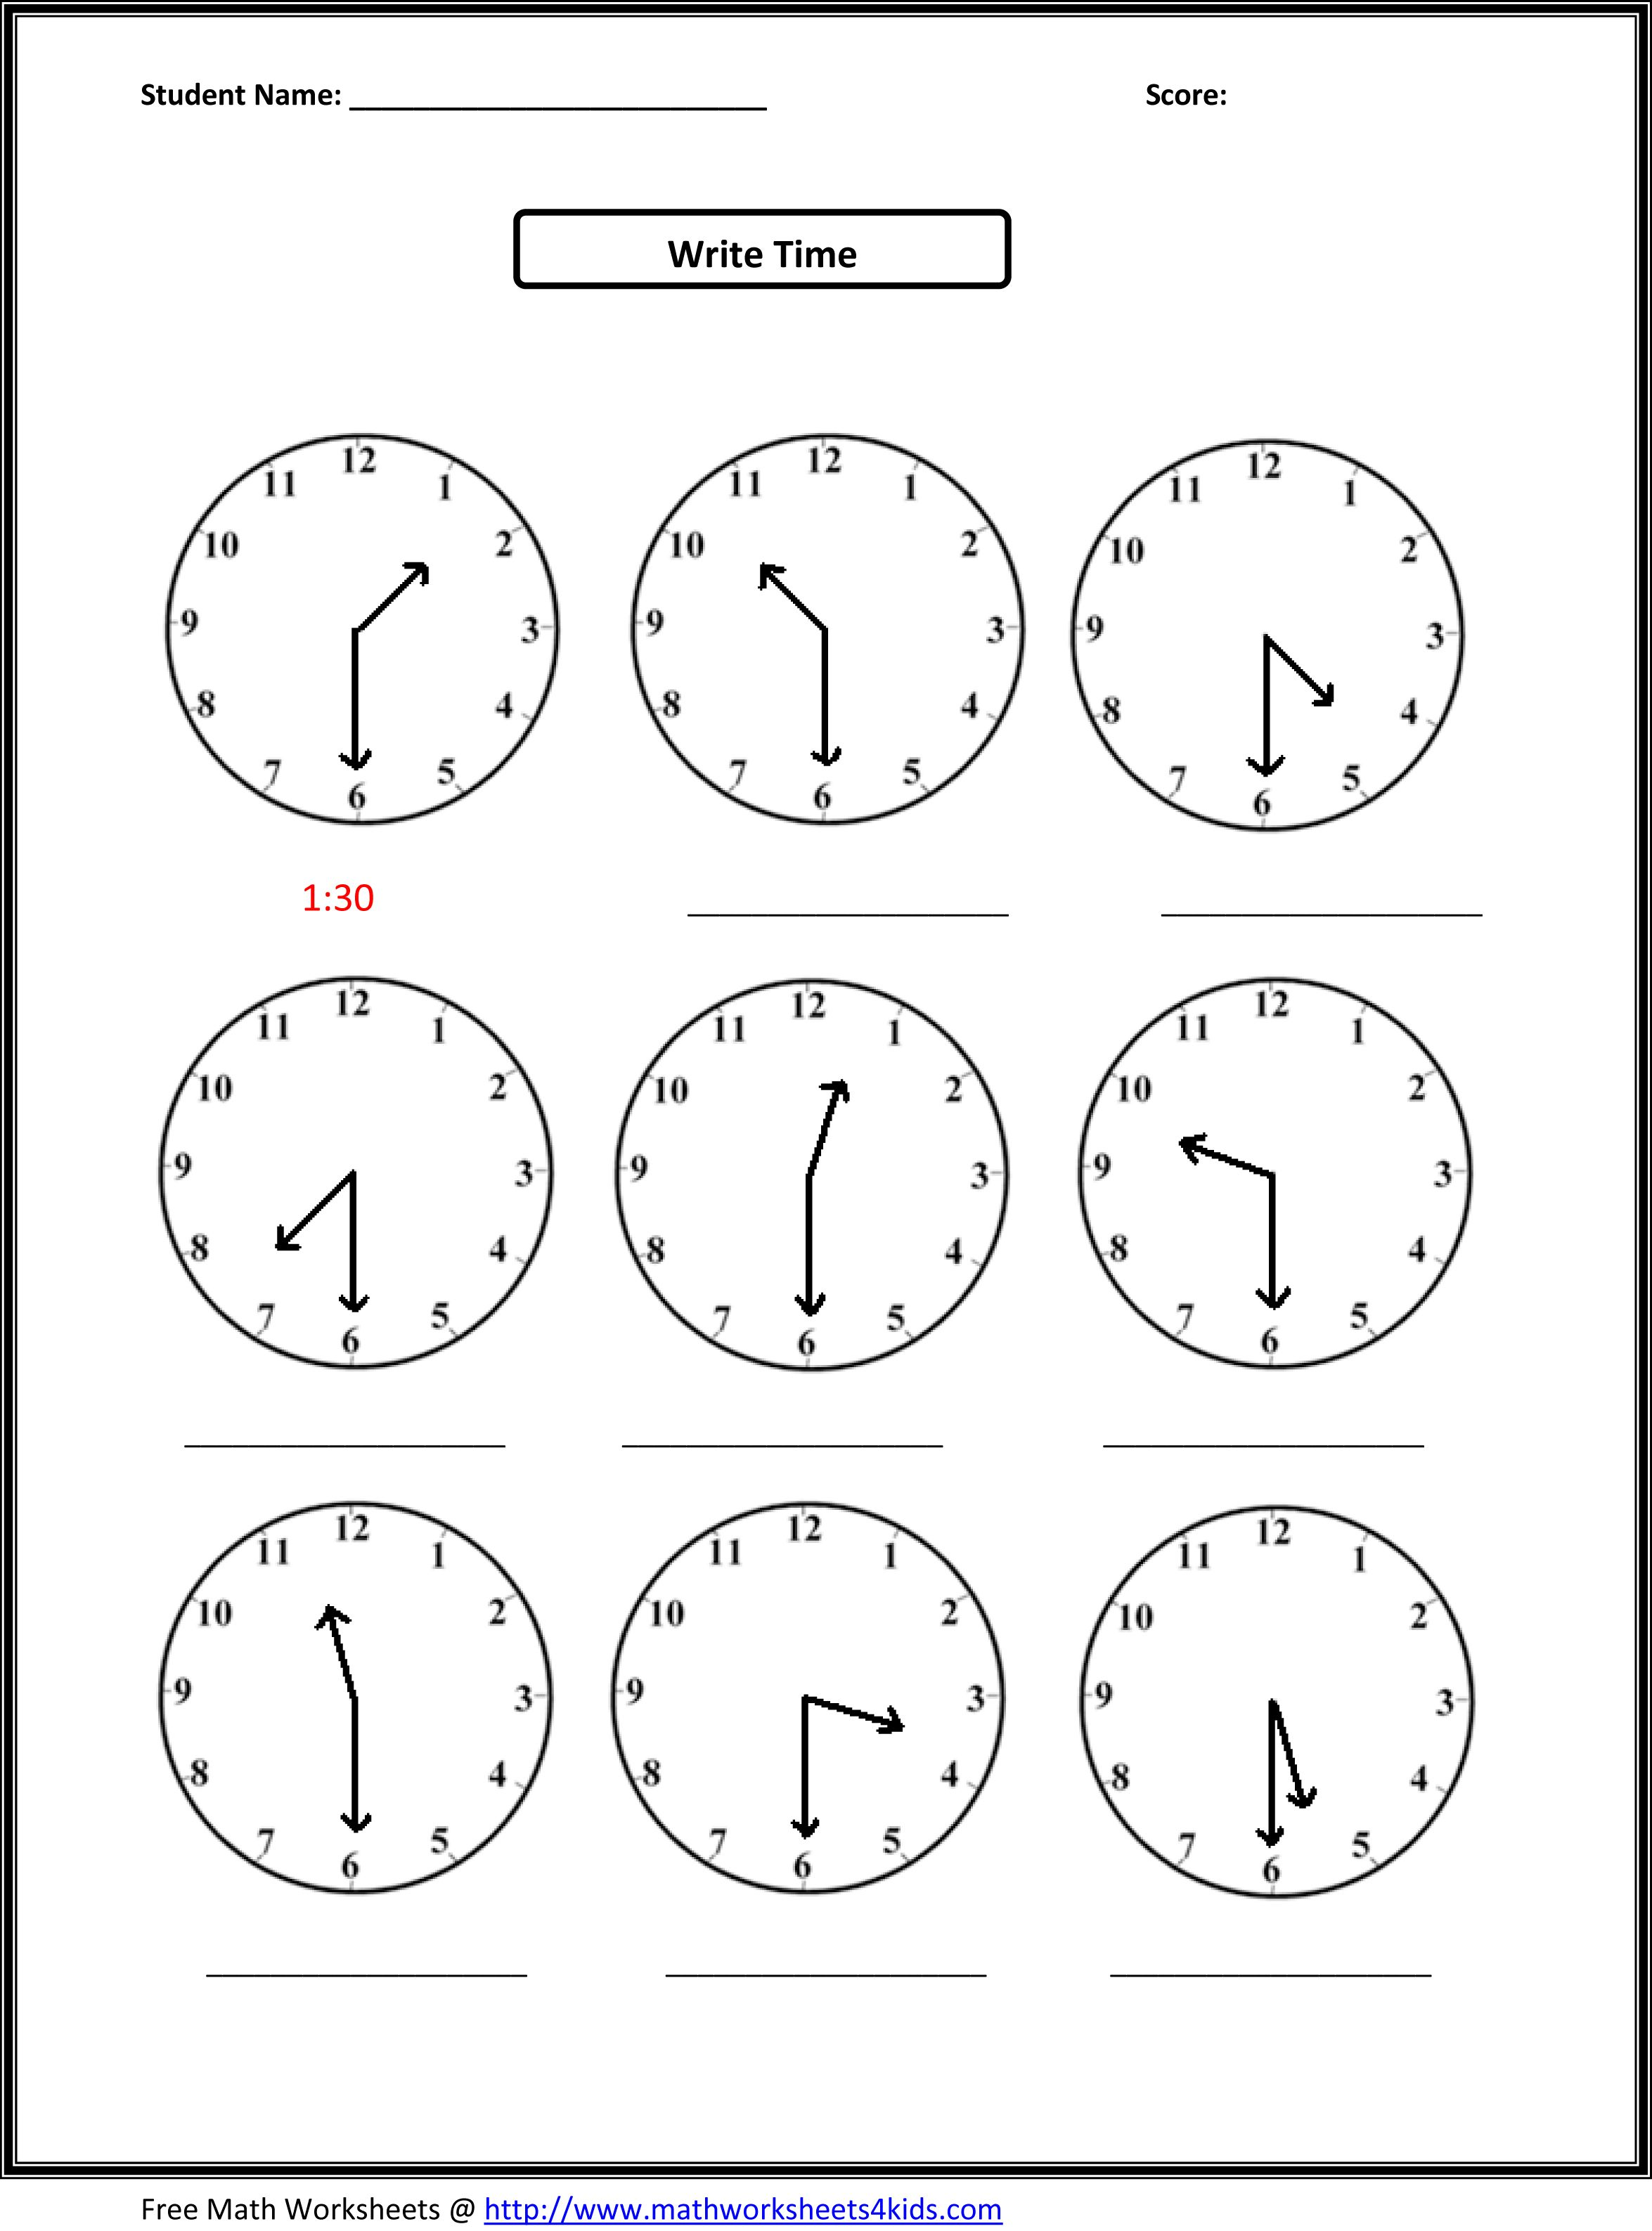 Proatmealus  Pretty Worksheet On Time For Grade   Reocurent With Inspiring Free Printable Telling Time Worksheets Nd Grade  Reocurent With Beauteous Division With Decimals Worksheets Also Special Right Triangles Worksheet    Answers In Addition Insert New Worksheet In Excel And Communication Merit Badge Worksheet As Well As Cooking Merit Badge Worksheet Answers Additionally    And    Triangles Worksheet From Reocurentcom With Proatmealus  Inspiring Worksheet On Time For Grade   Reocurent With Beauteous Free Printable Telling Time Worksheets Nd Grade  Reocurent And Pretty Division With Decimals Worksheets Also Special Right Triangles Worksheet    Answers In Addition Insert New Worksheet In Excel From Reocurentcom